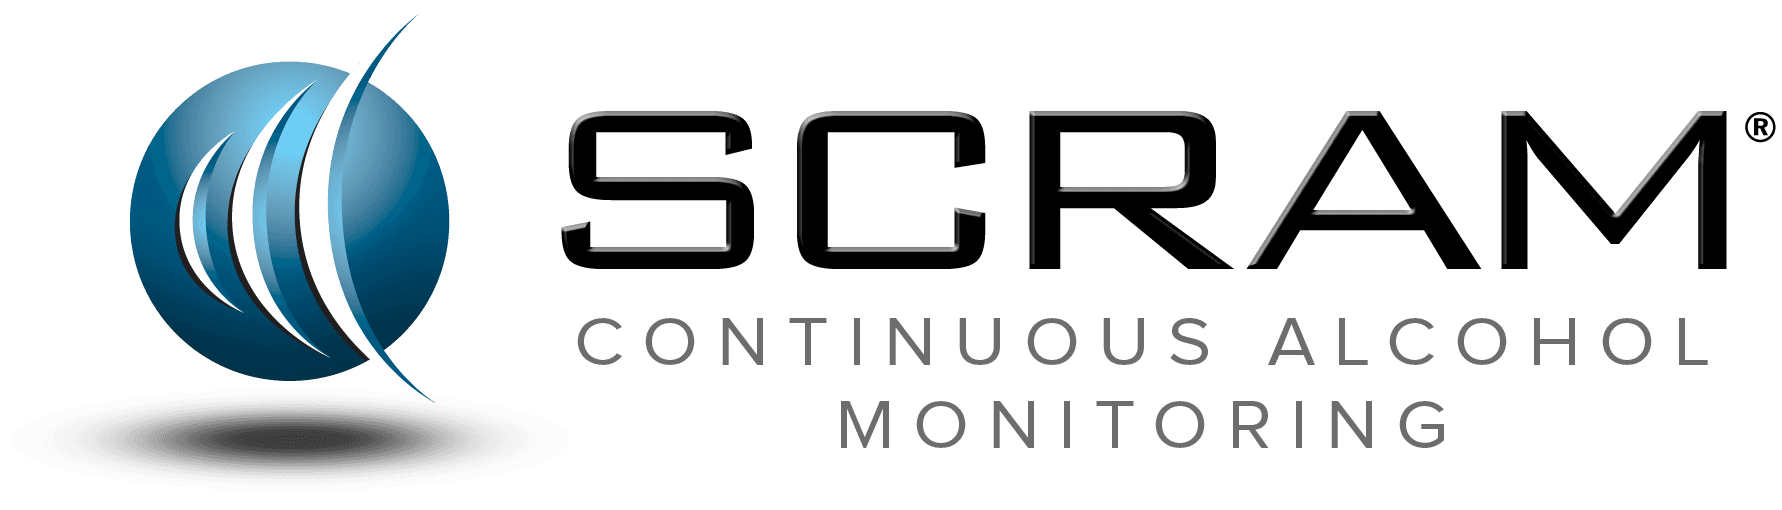 SCRAM Continuous Alcohol Monitoring